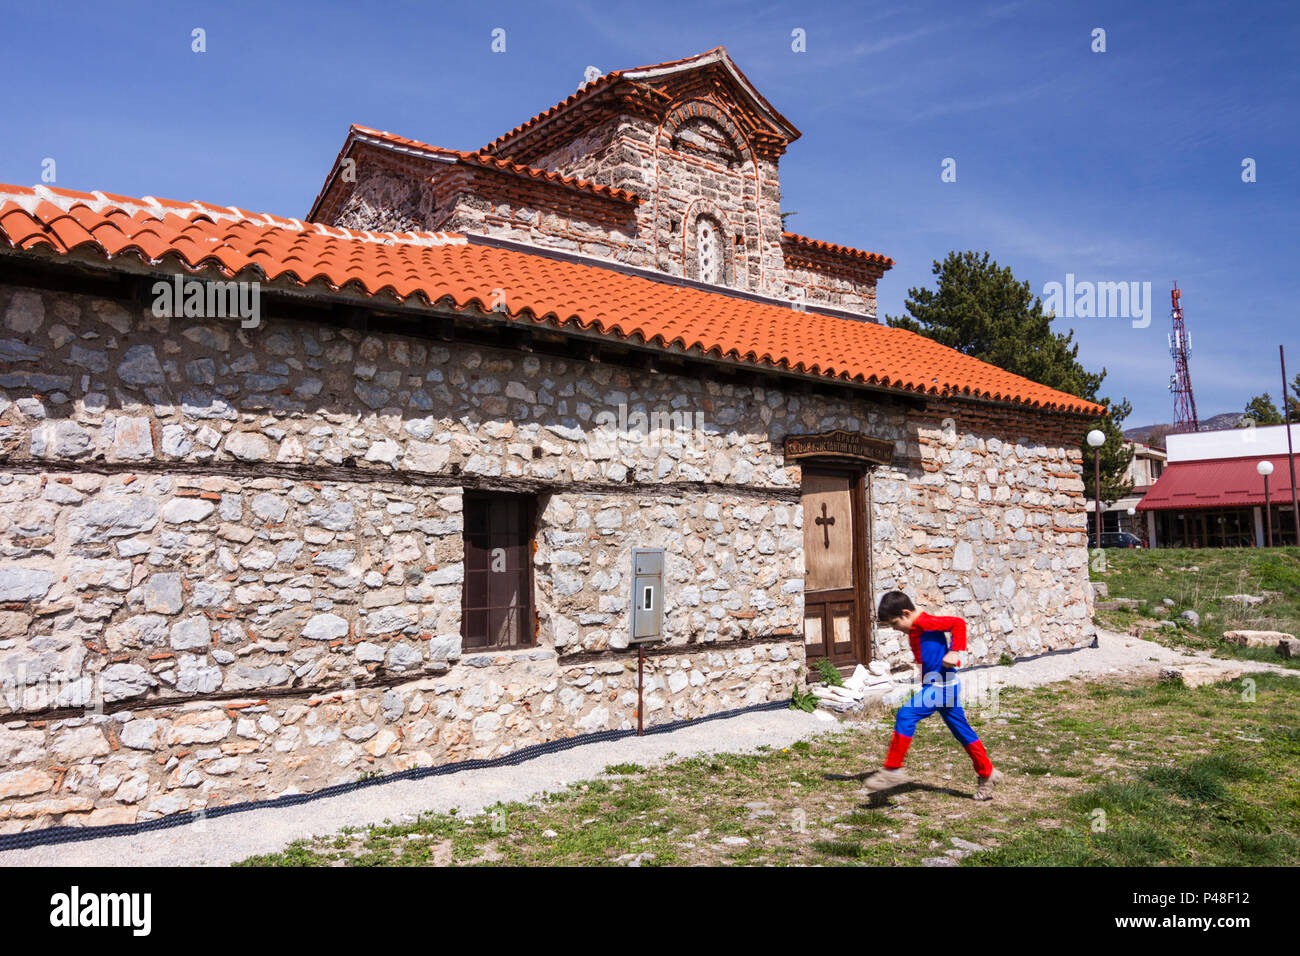 Ohrid, Republic of Macedonia : A child in an Spiderman costume walks past the Holy Mother of God Peribleptos church (1295) one of the oldest churches  - Stock Image